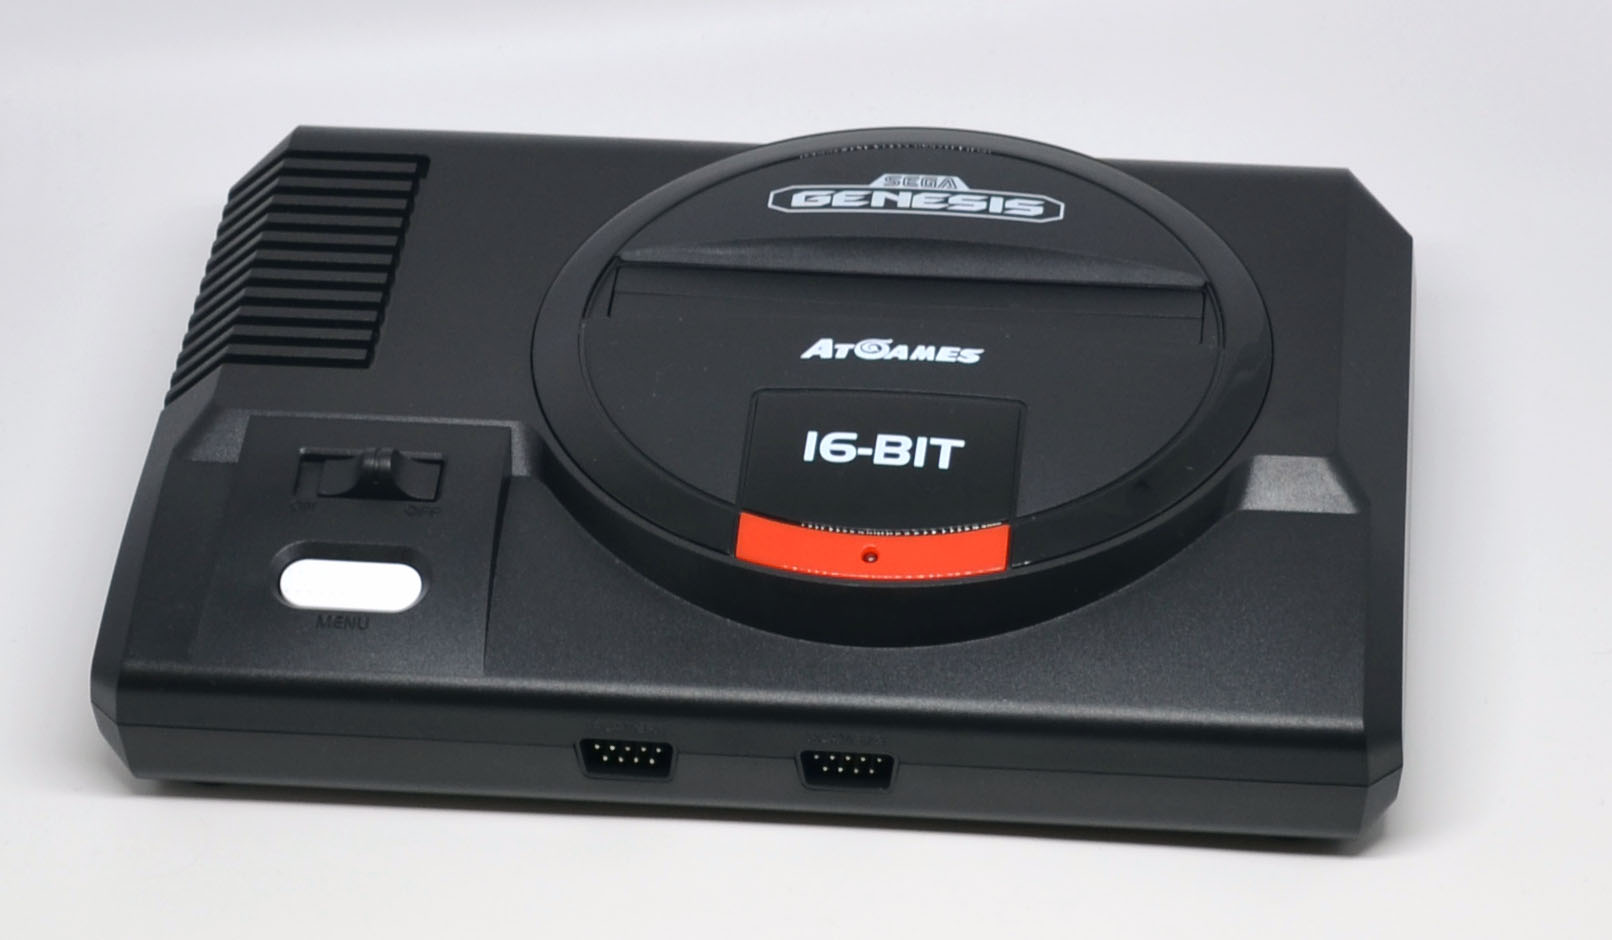 The console.